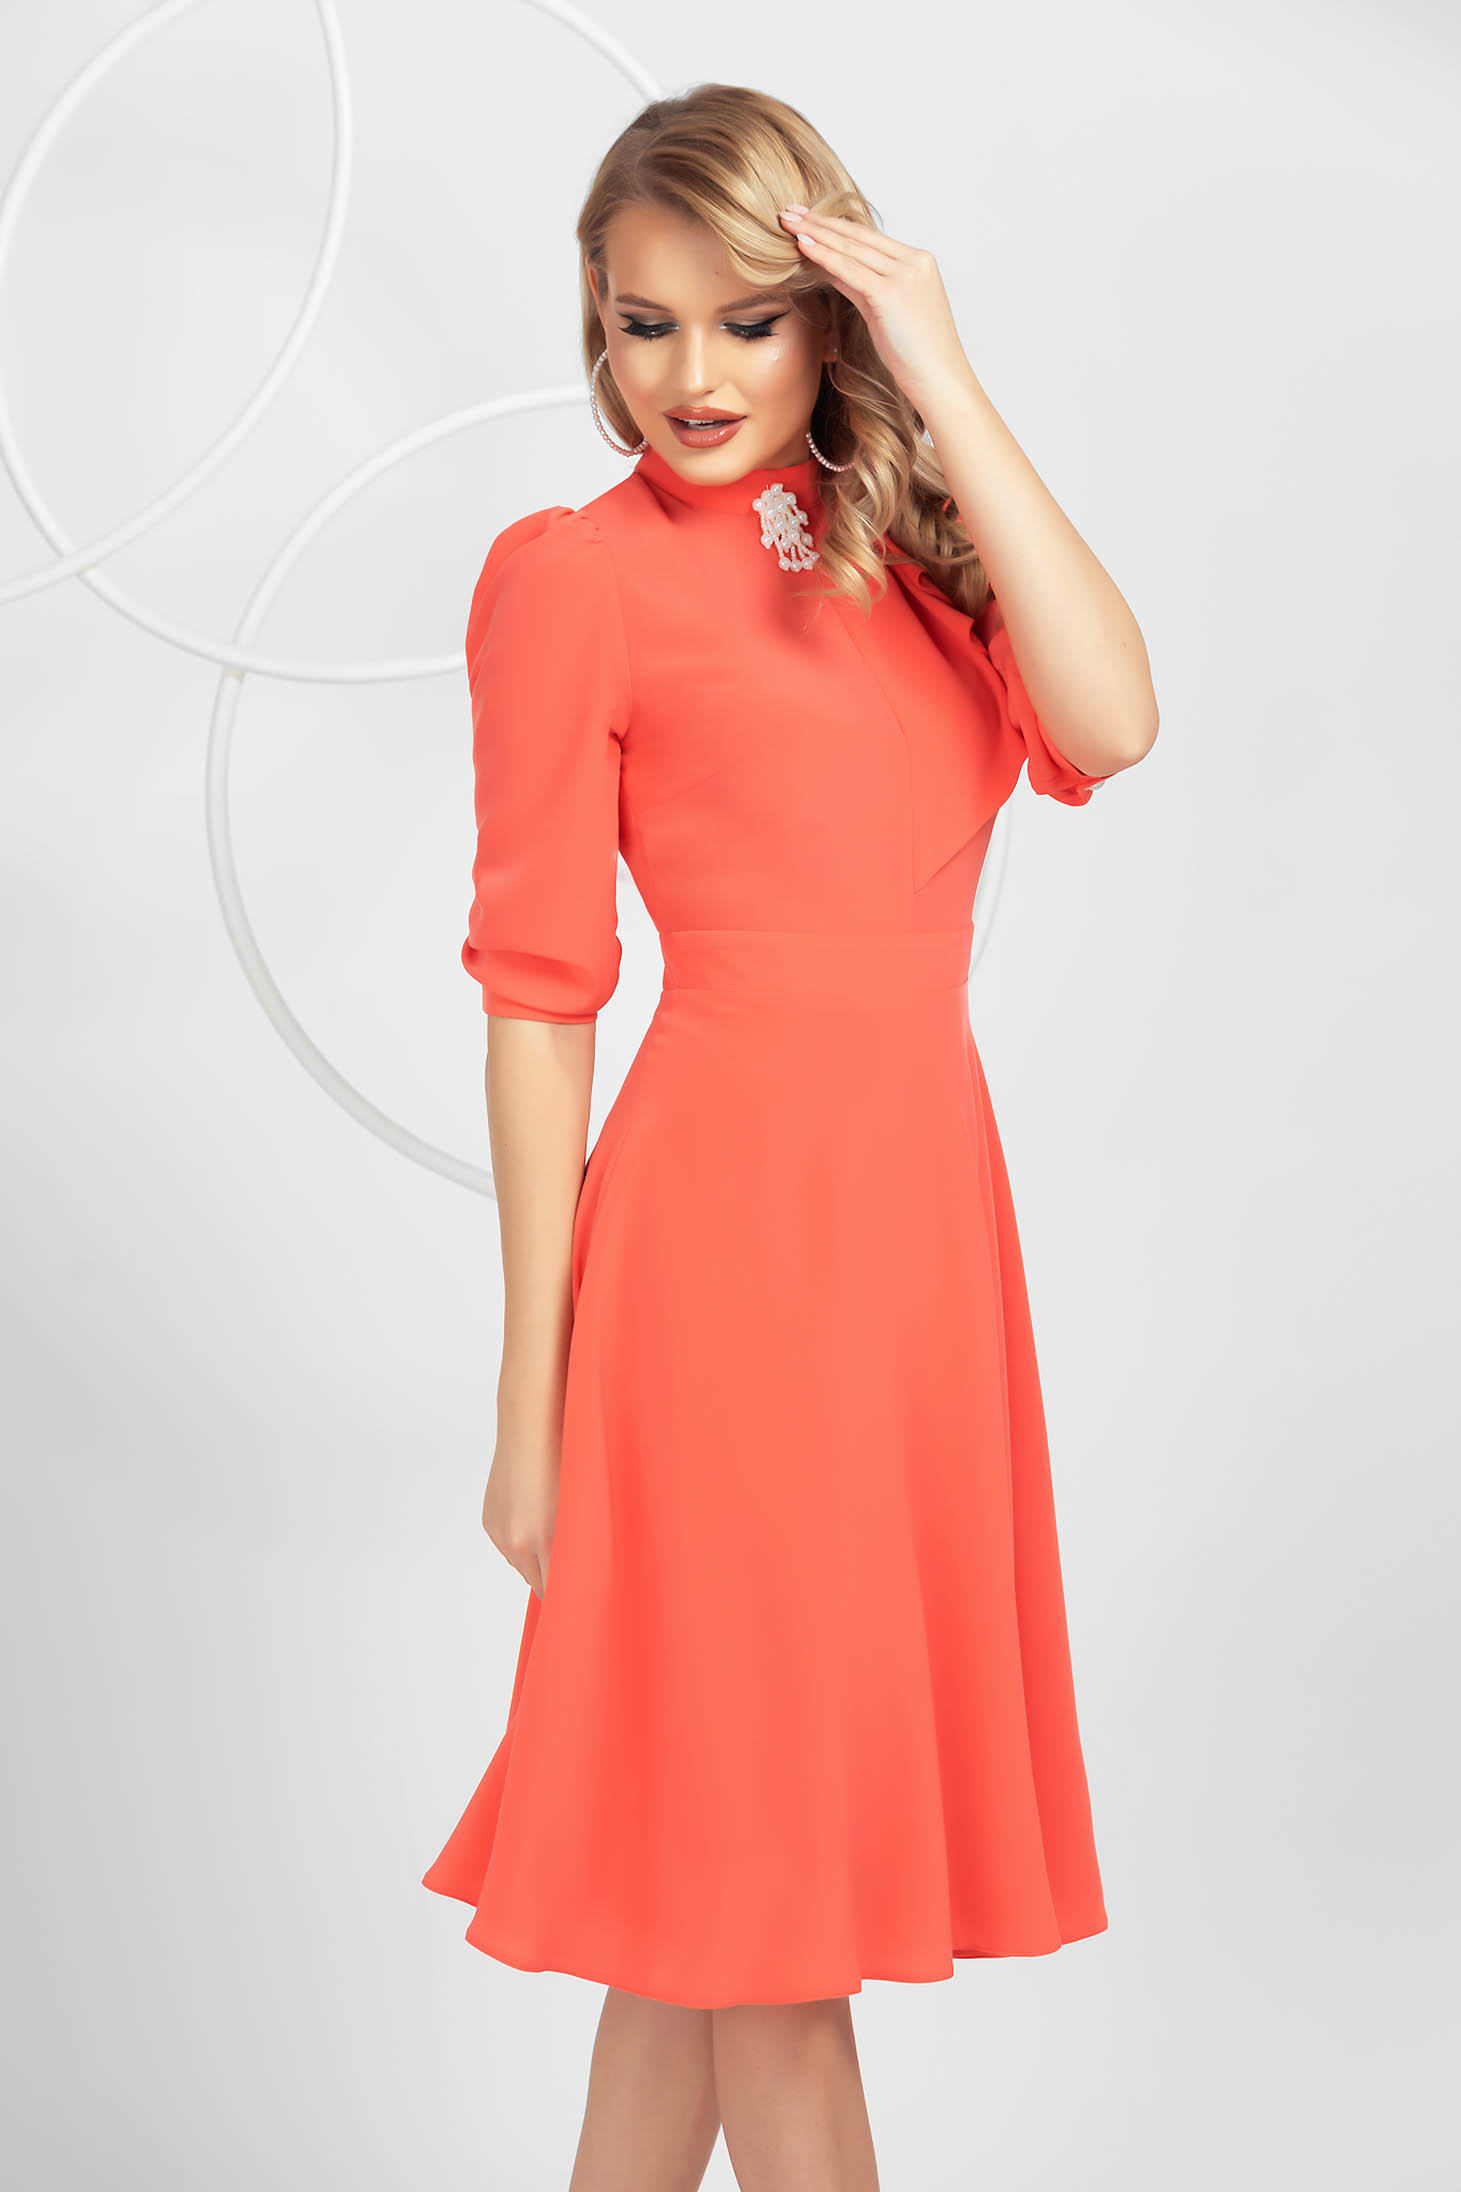 Coral dress from veil fabric cloche accessorized with breastpin